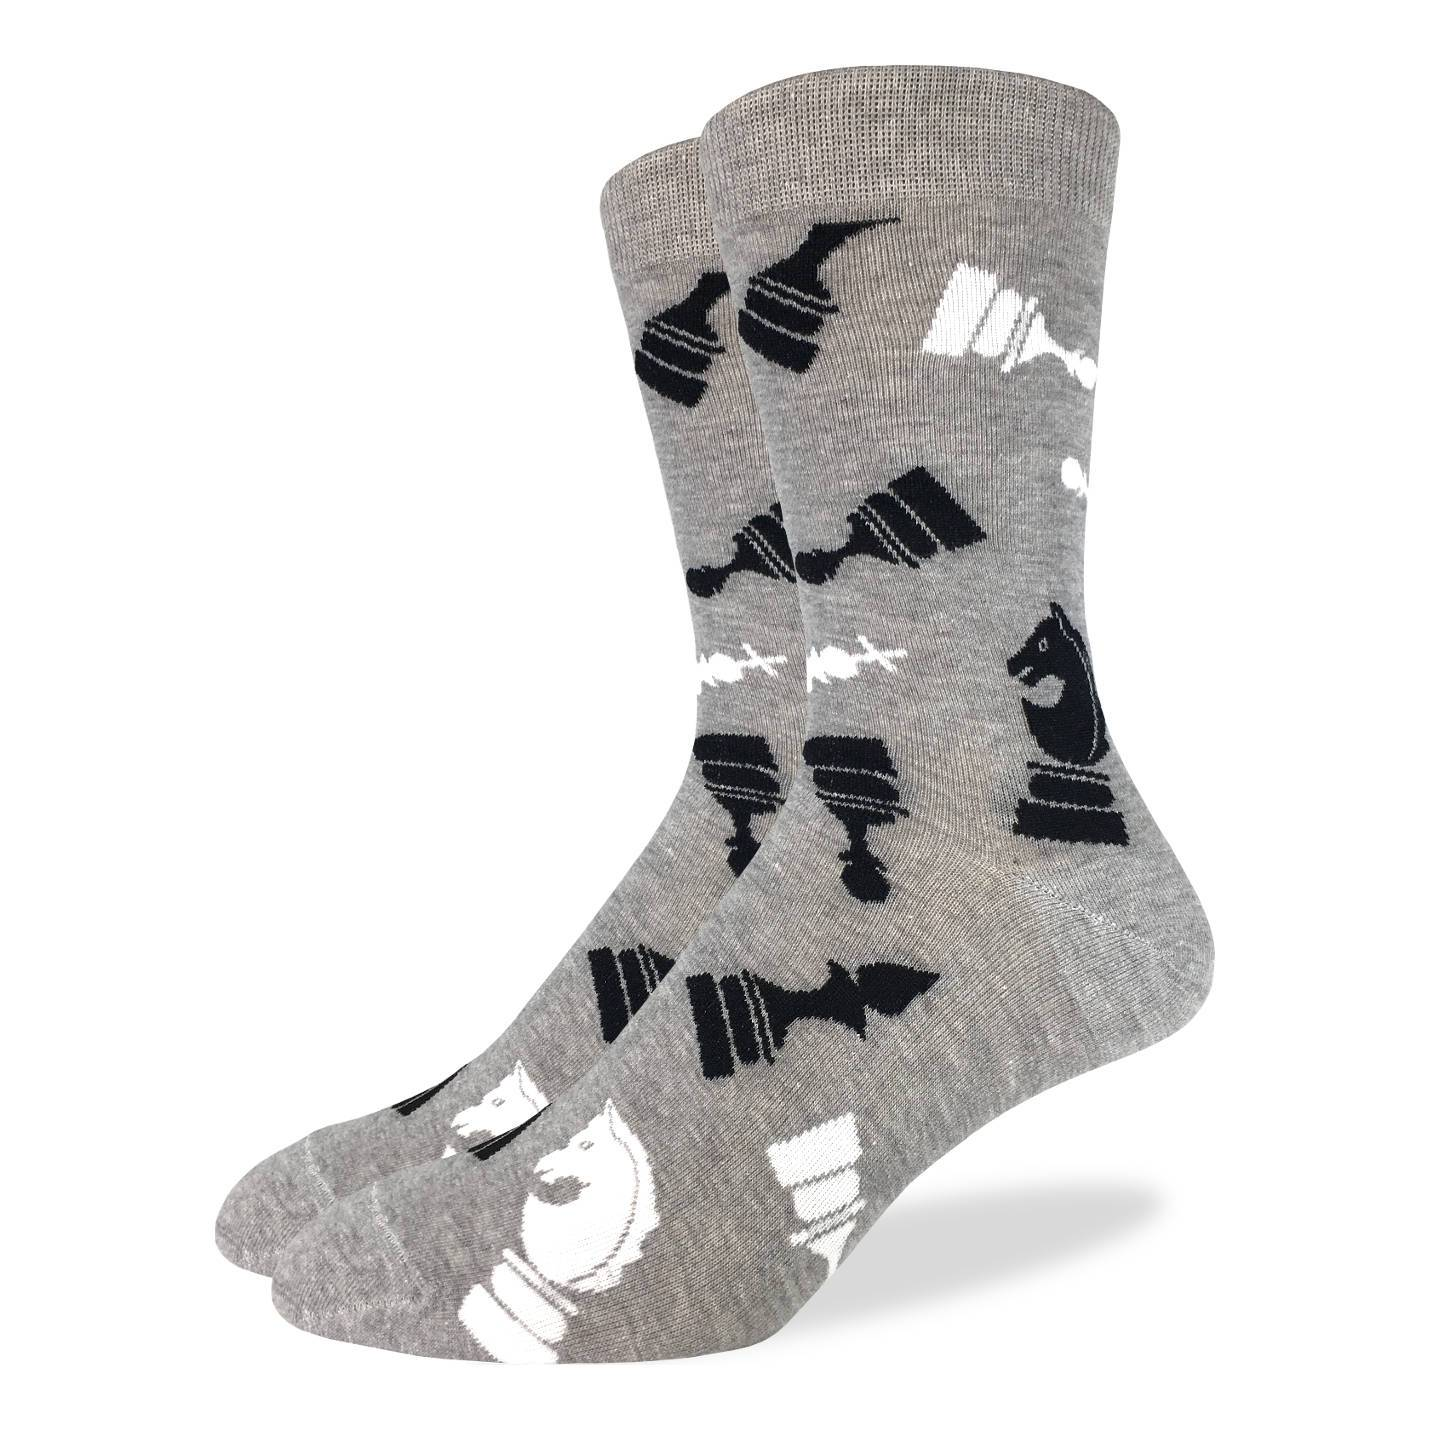 Men's Chess Socks - Good Luck Sock